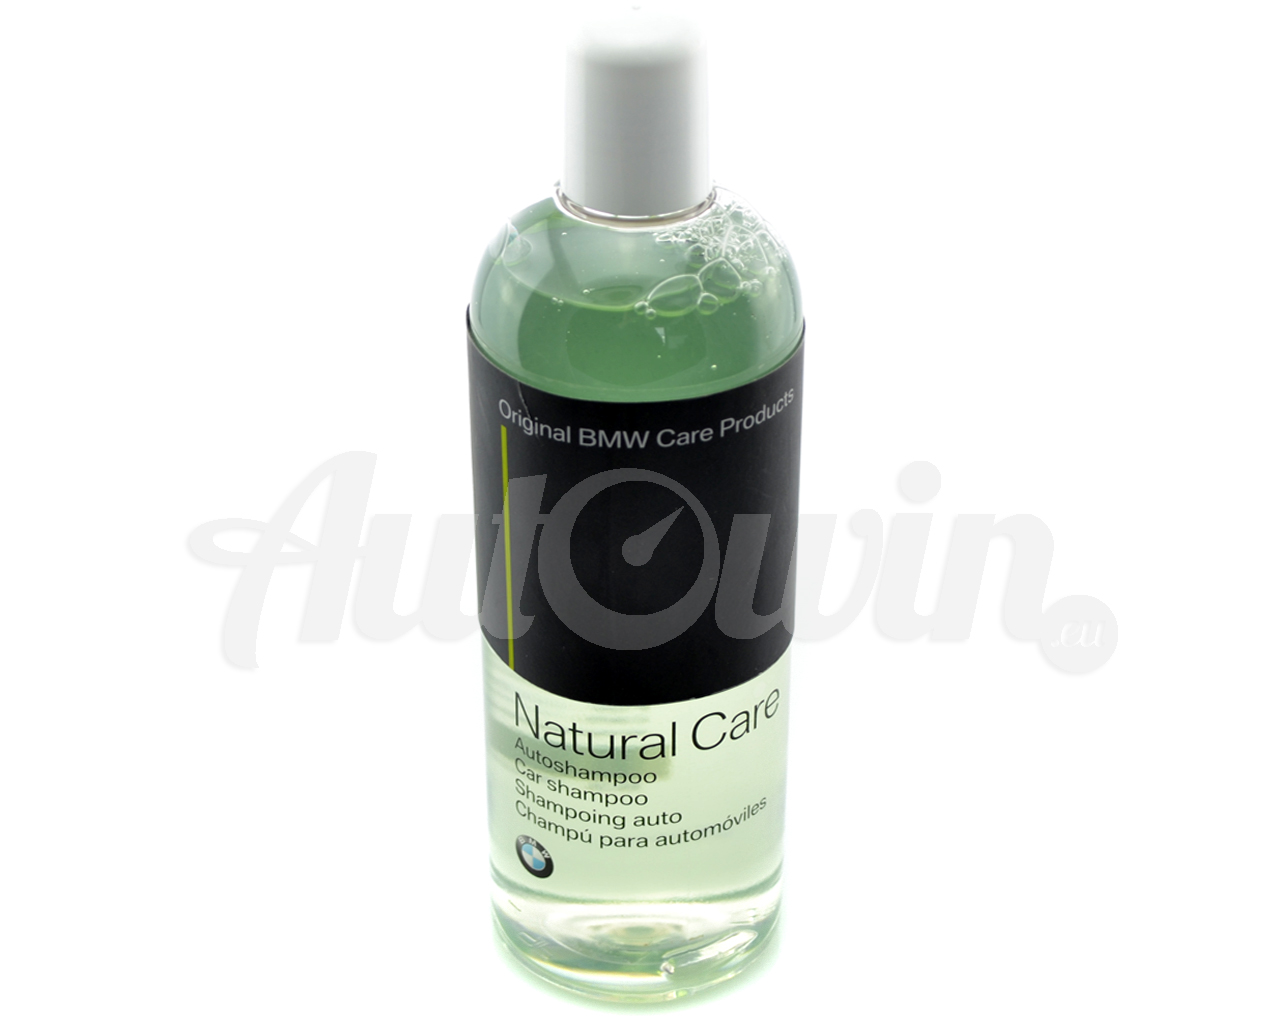 bmw natural care car interior exterior cleaning wash shampoo 500ml accessories. Black Bedroom Furniture Sets. Home Design Ideas